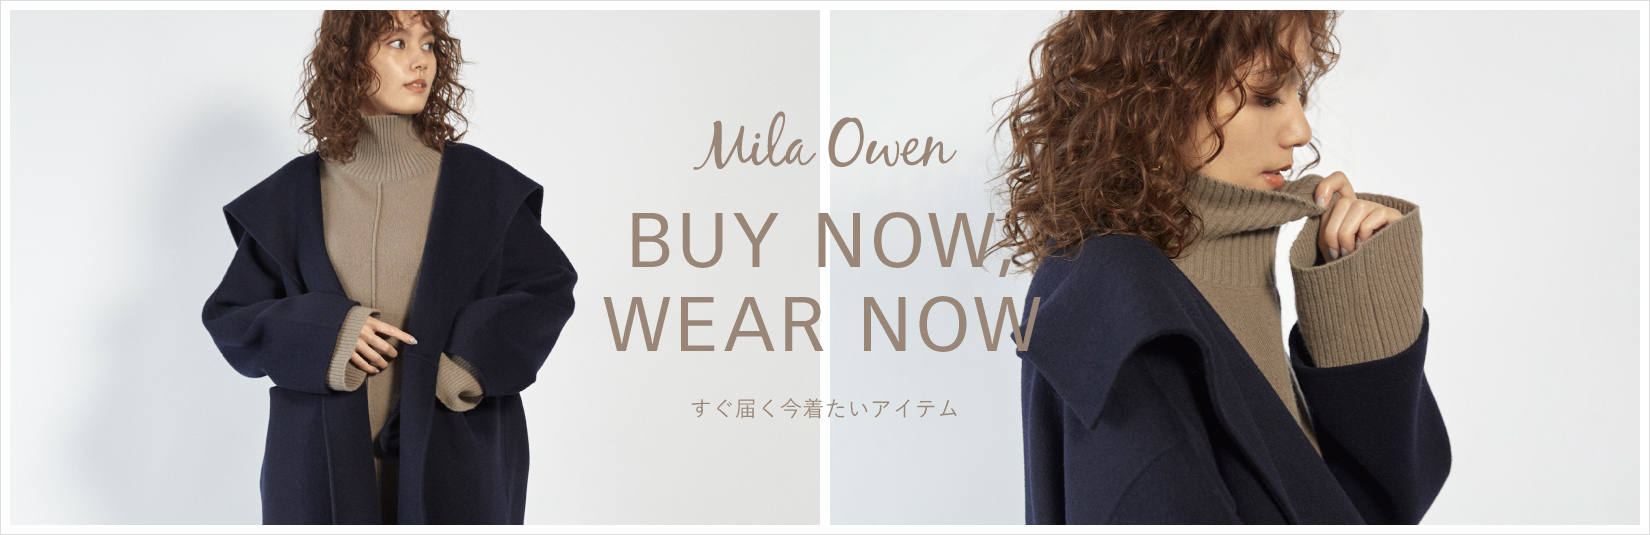 Mila Owen BUY NOW, WEAR NOW